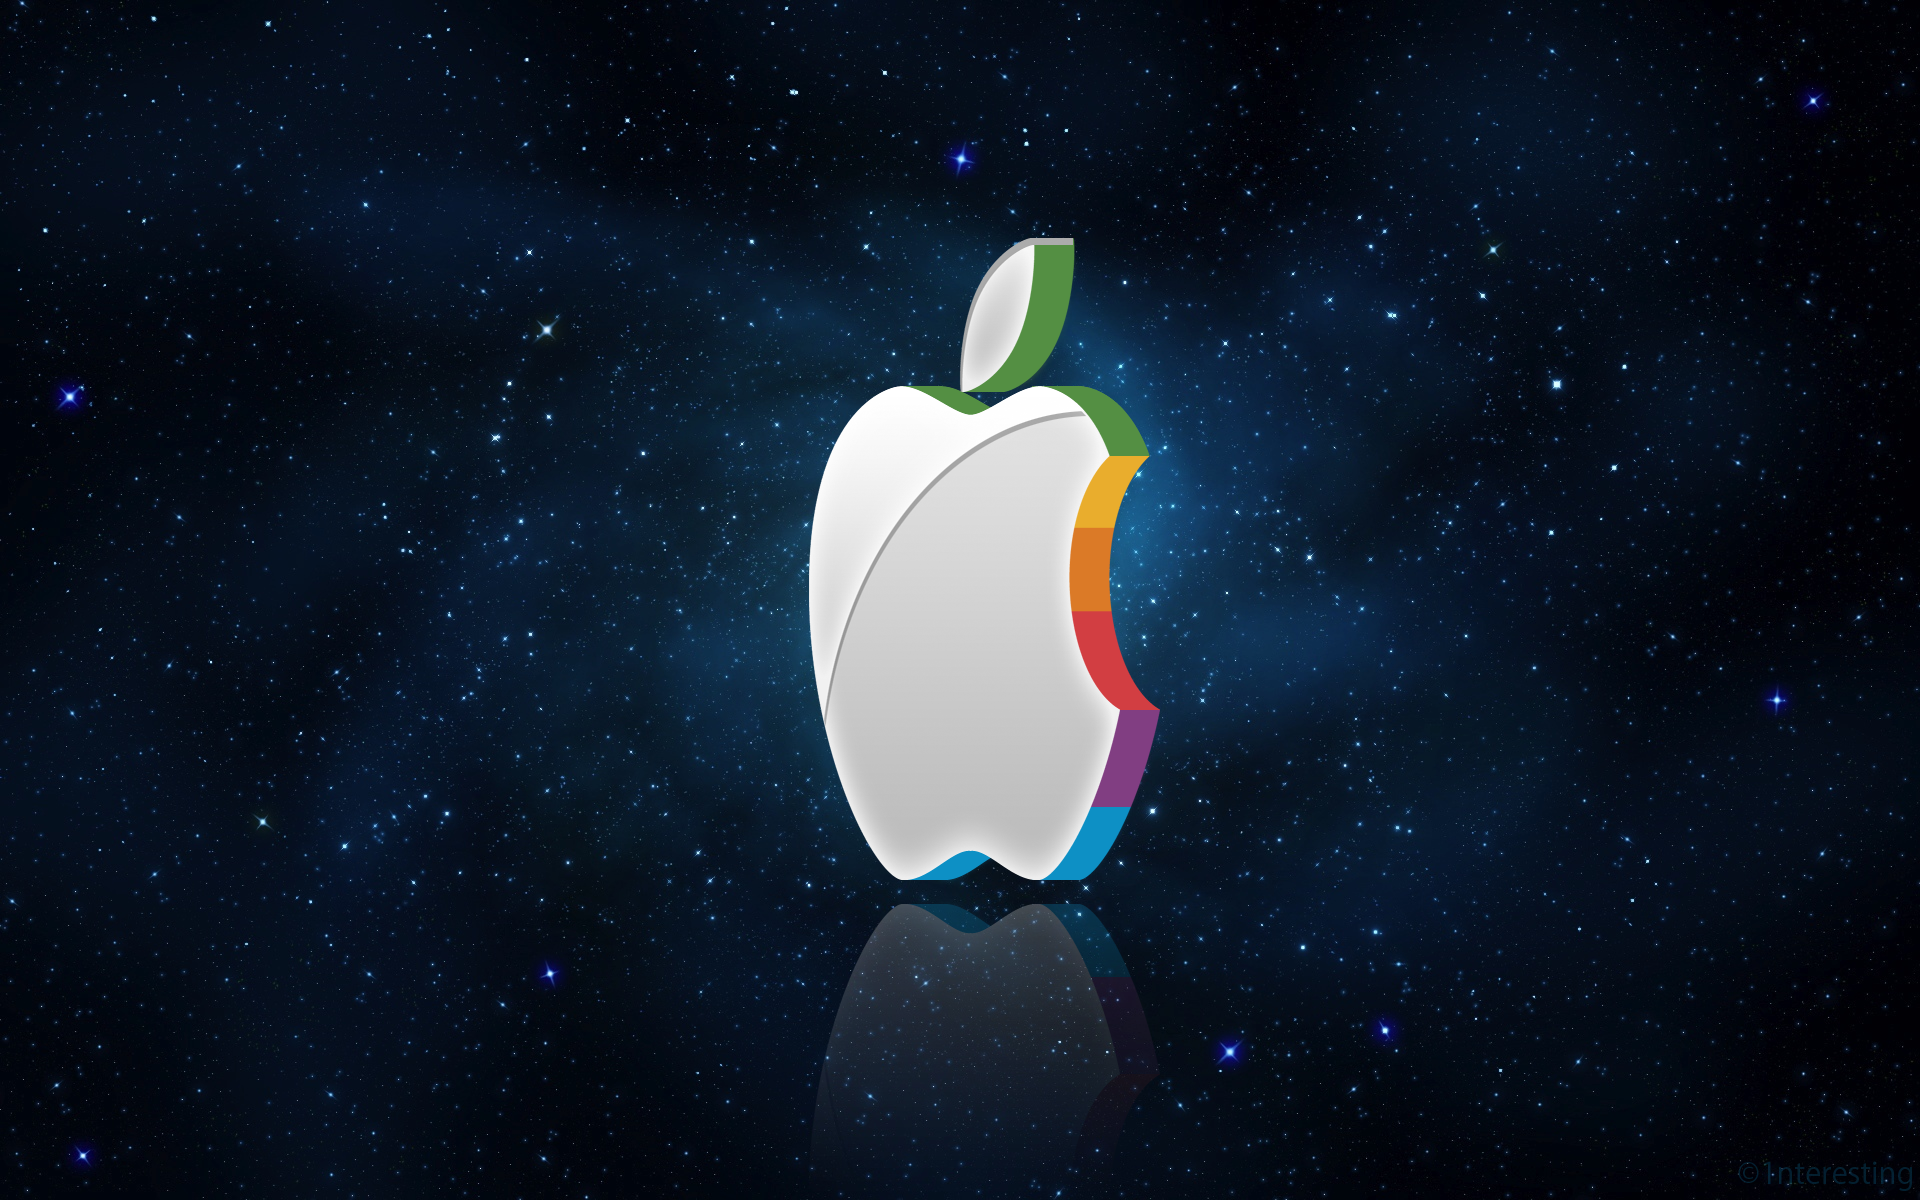 Abstract Apple Hd Wallpaper 2560×1440 Wallpaper